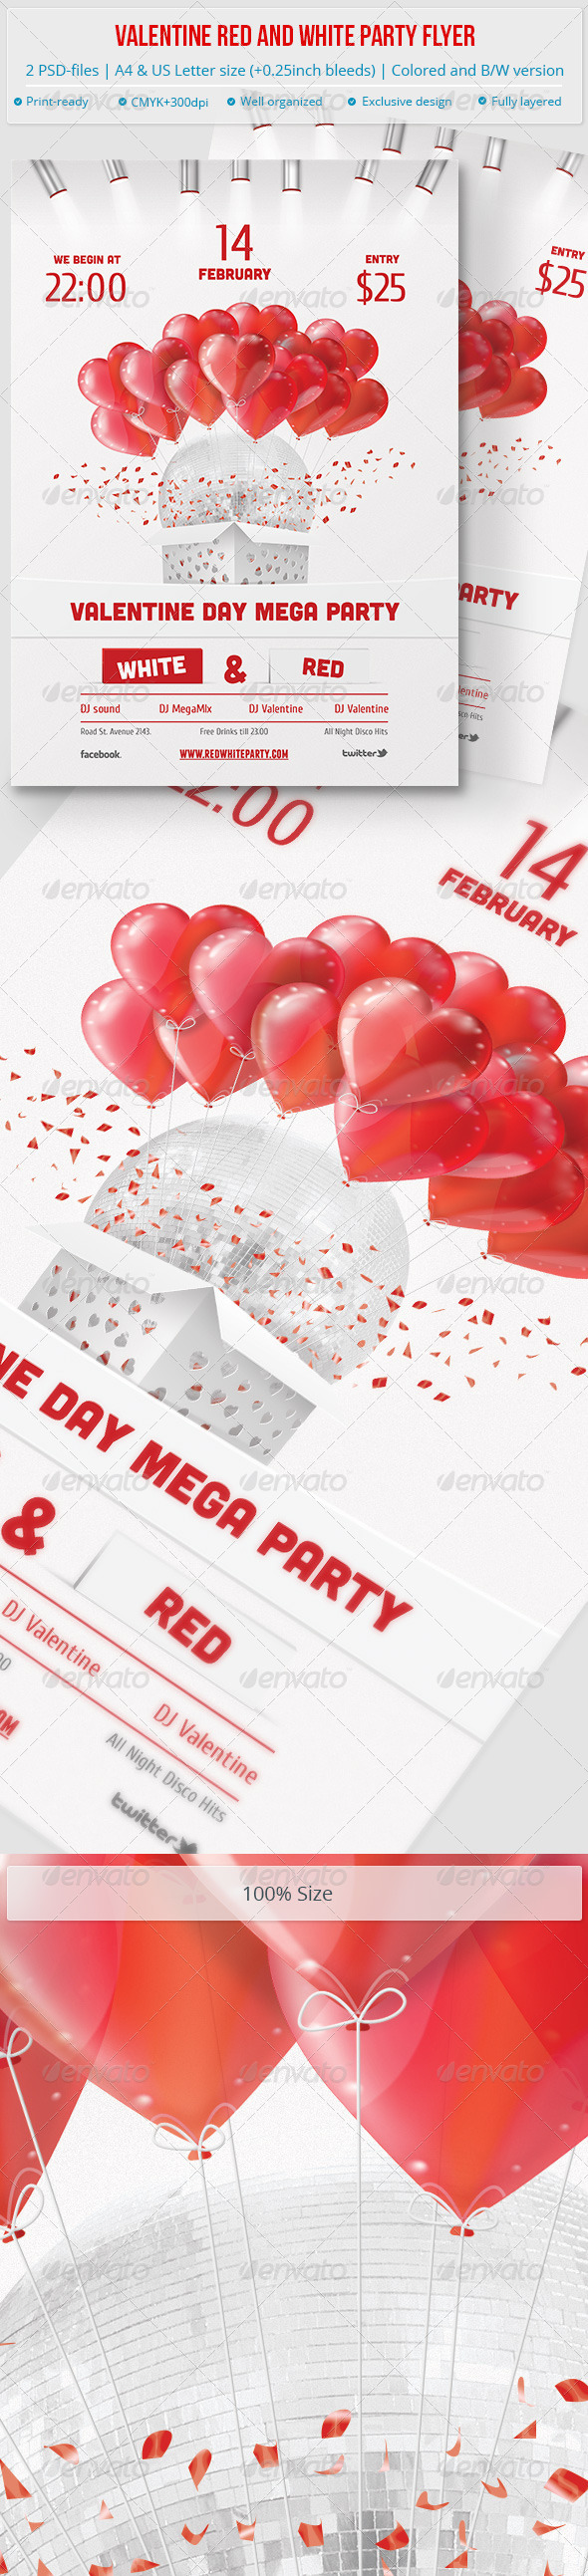 Valentine Red and White Party Flyer - Clubs & Parties Events